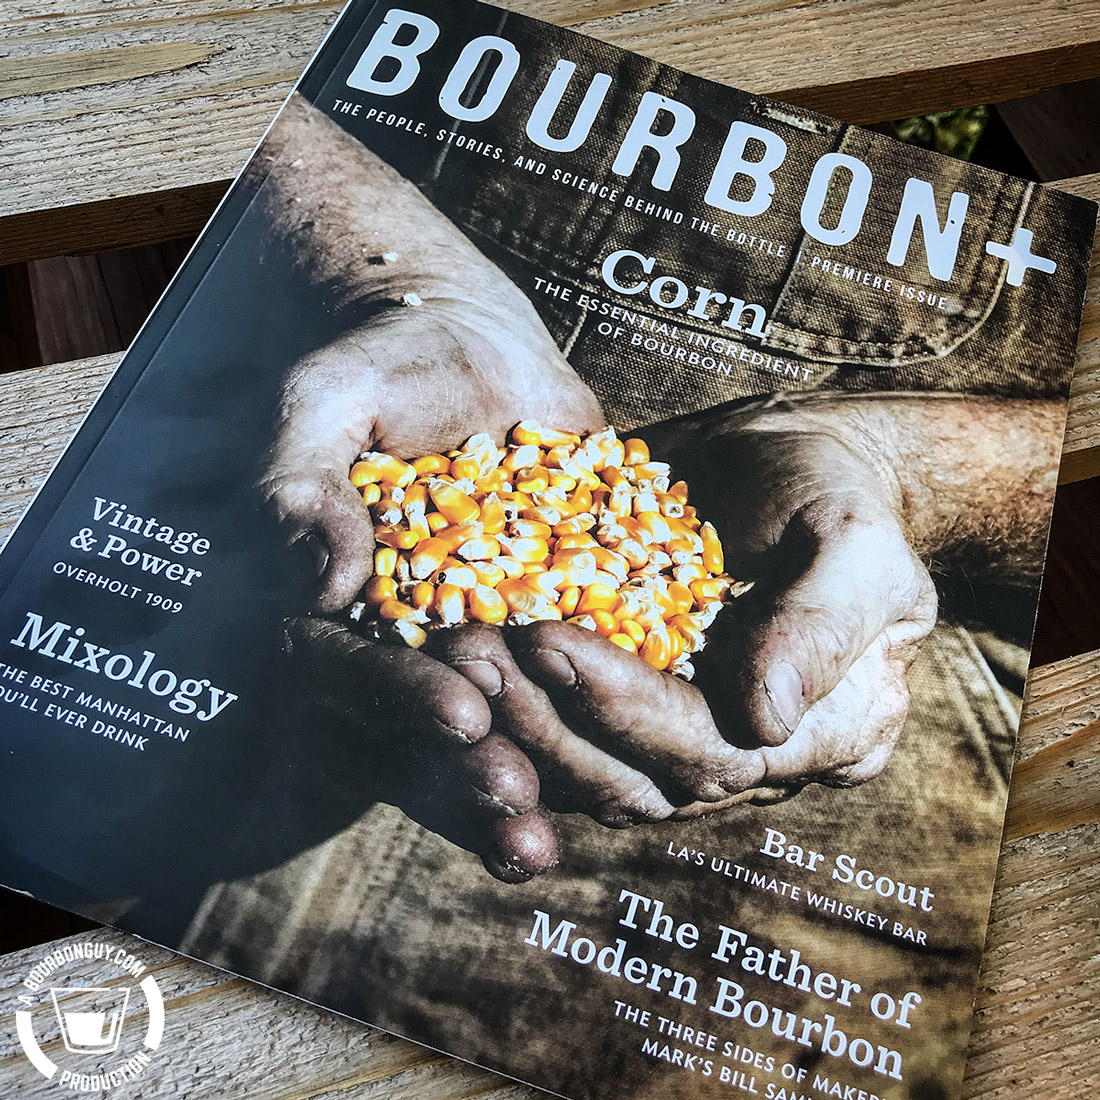 IMAGE: The premiere issue of Bourbon+. A magazine about bourbon.